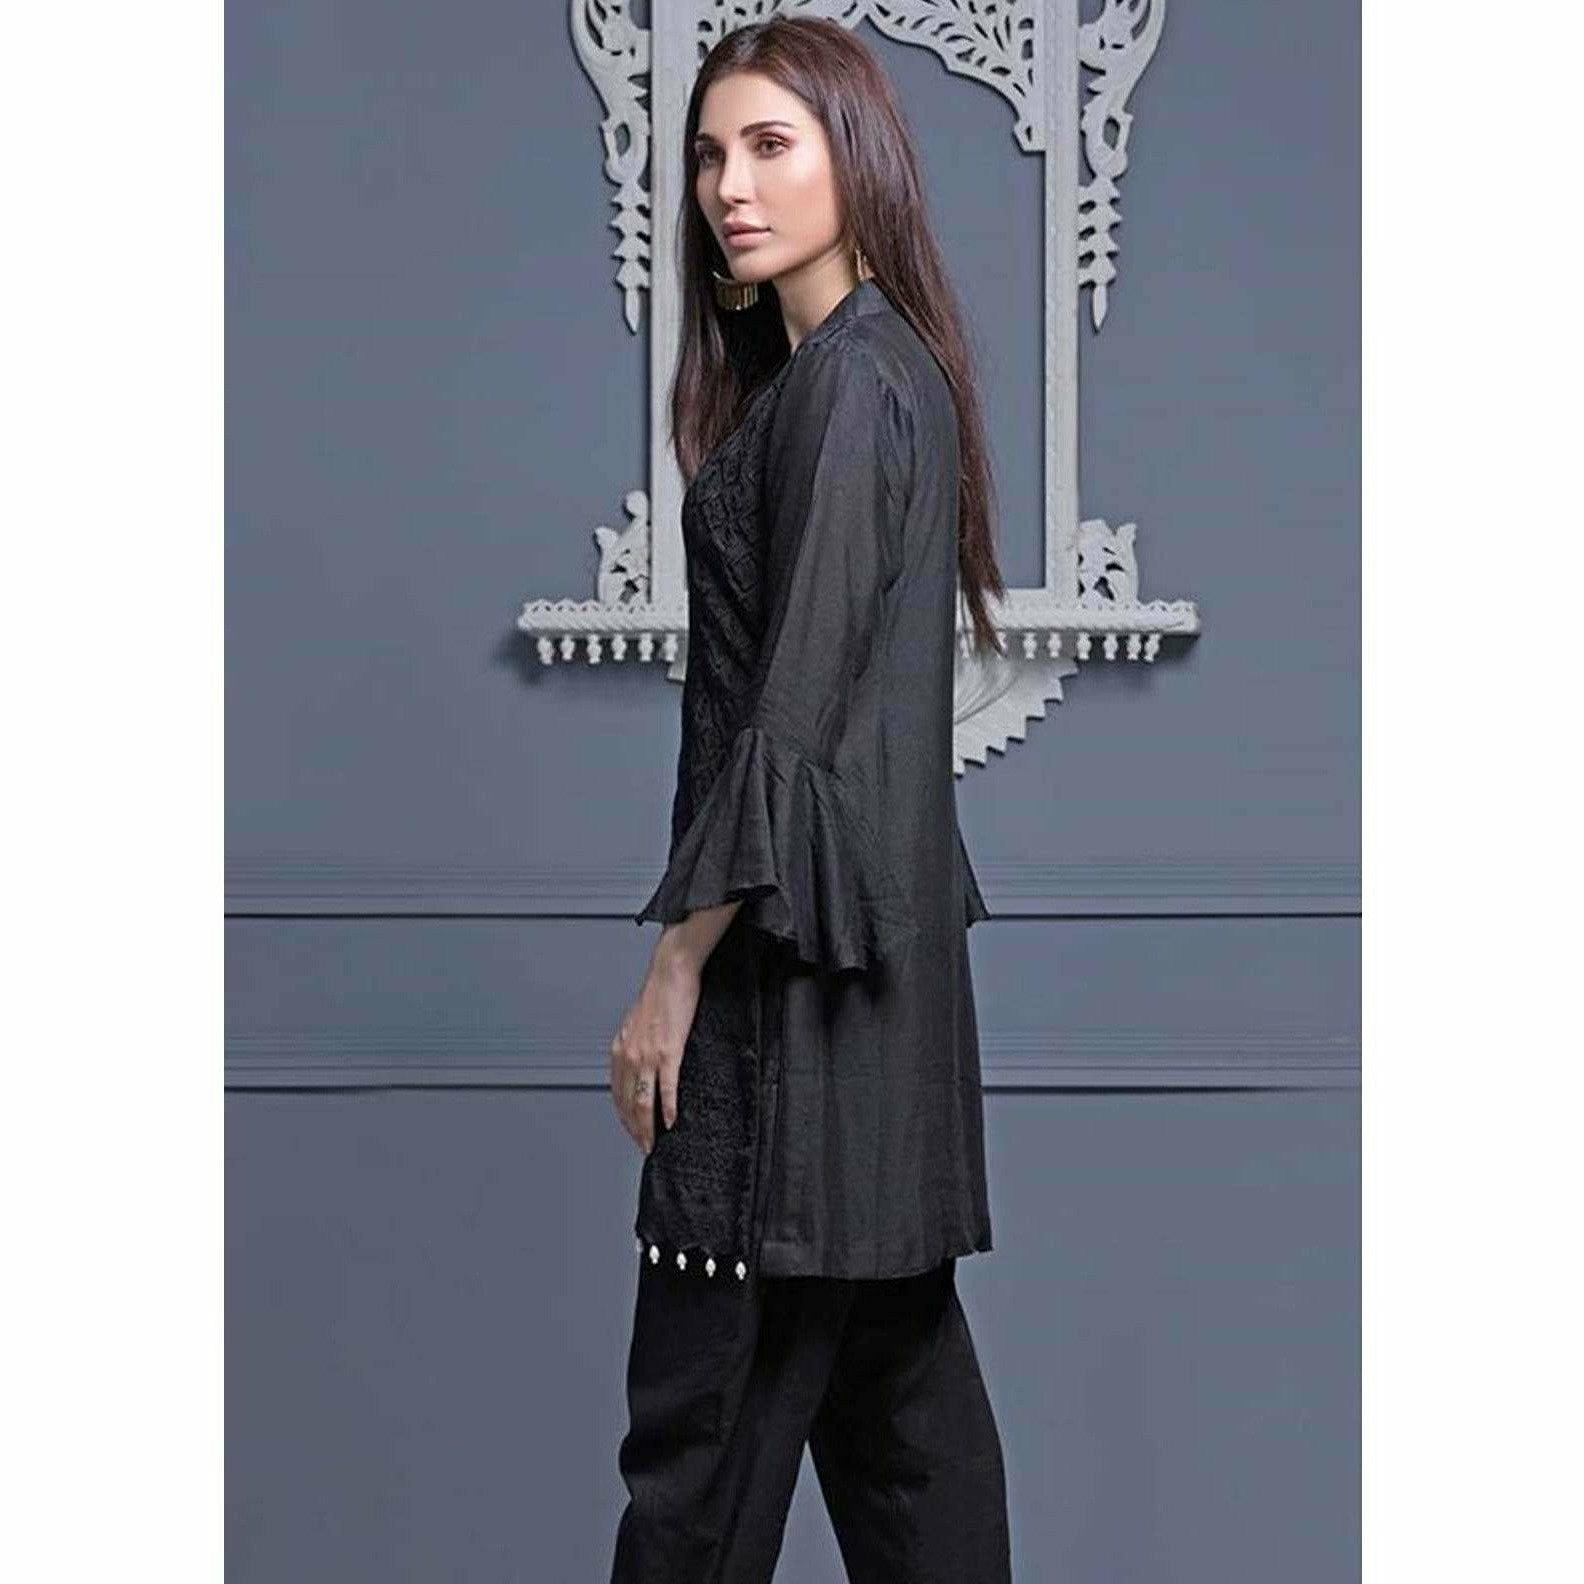 Areeba Saleem Embroidered Two Piece Kurti ZS-04